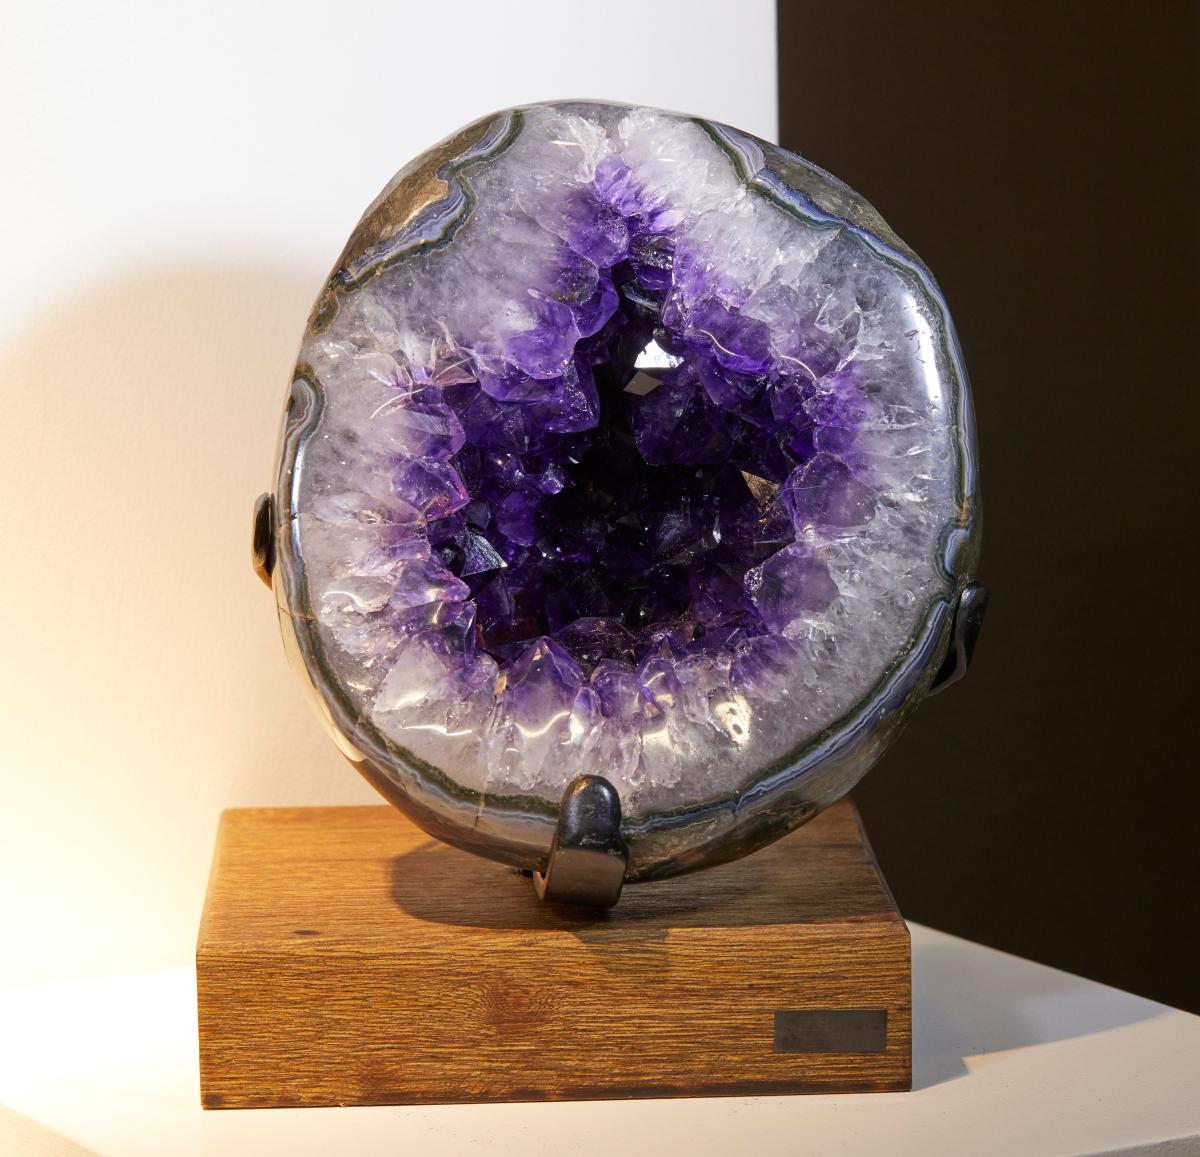 POLISHED SPLIT AMETHYST GEODE  SURROUNDED BY WHITE QUARTZ